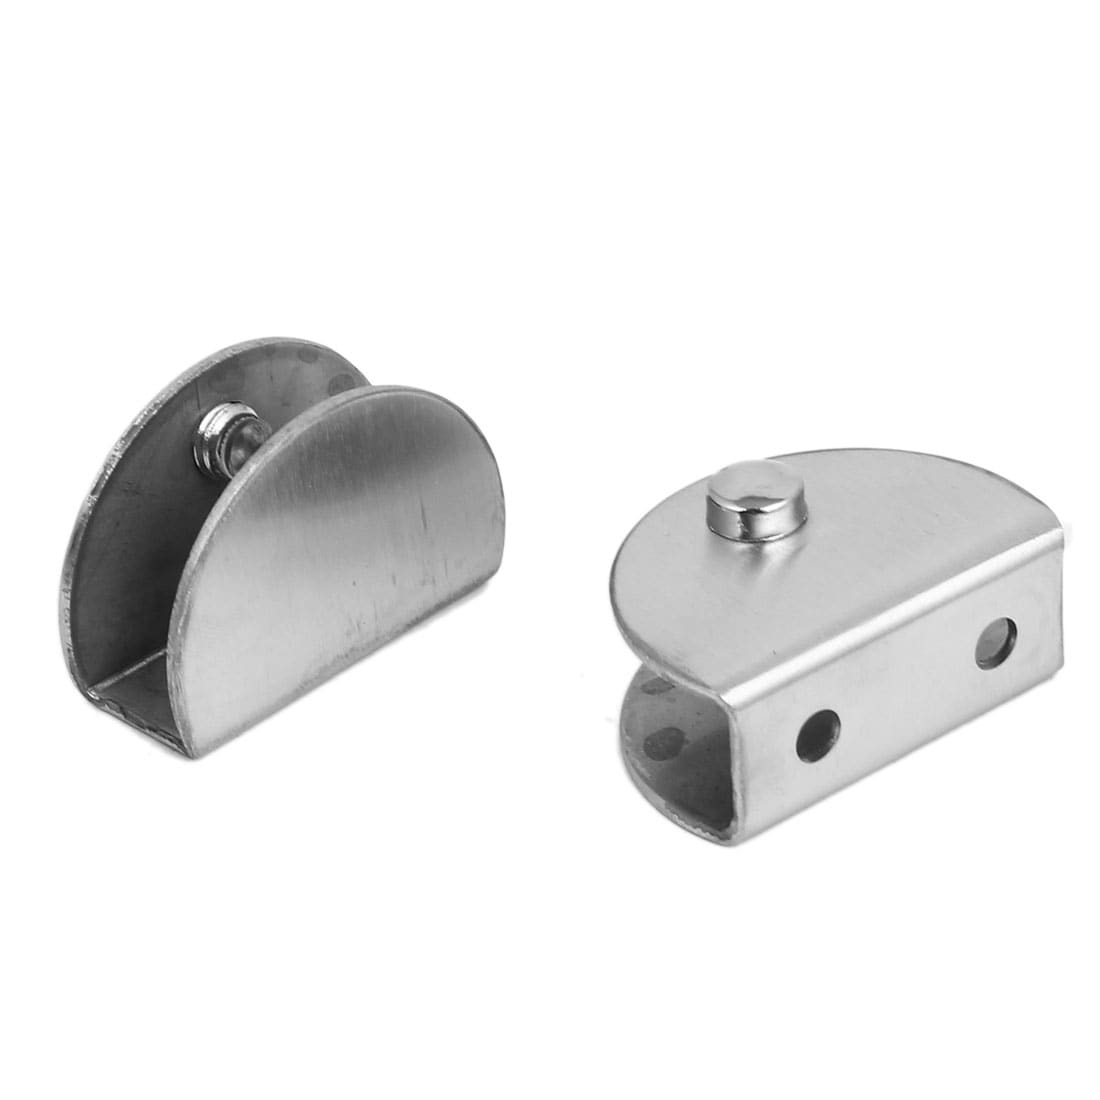 2pcs Silver Tone Metal Adjustable Screw Mount Door Hinge Glass Clamp Clip Holder